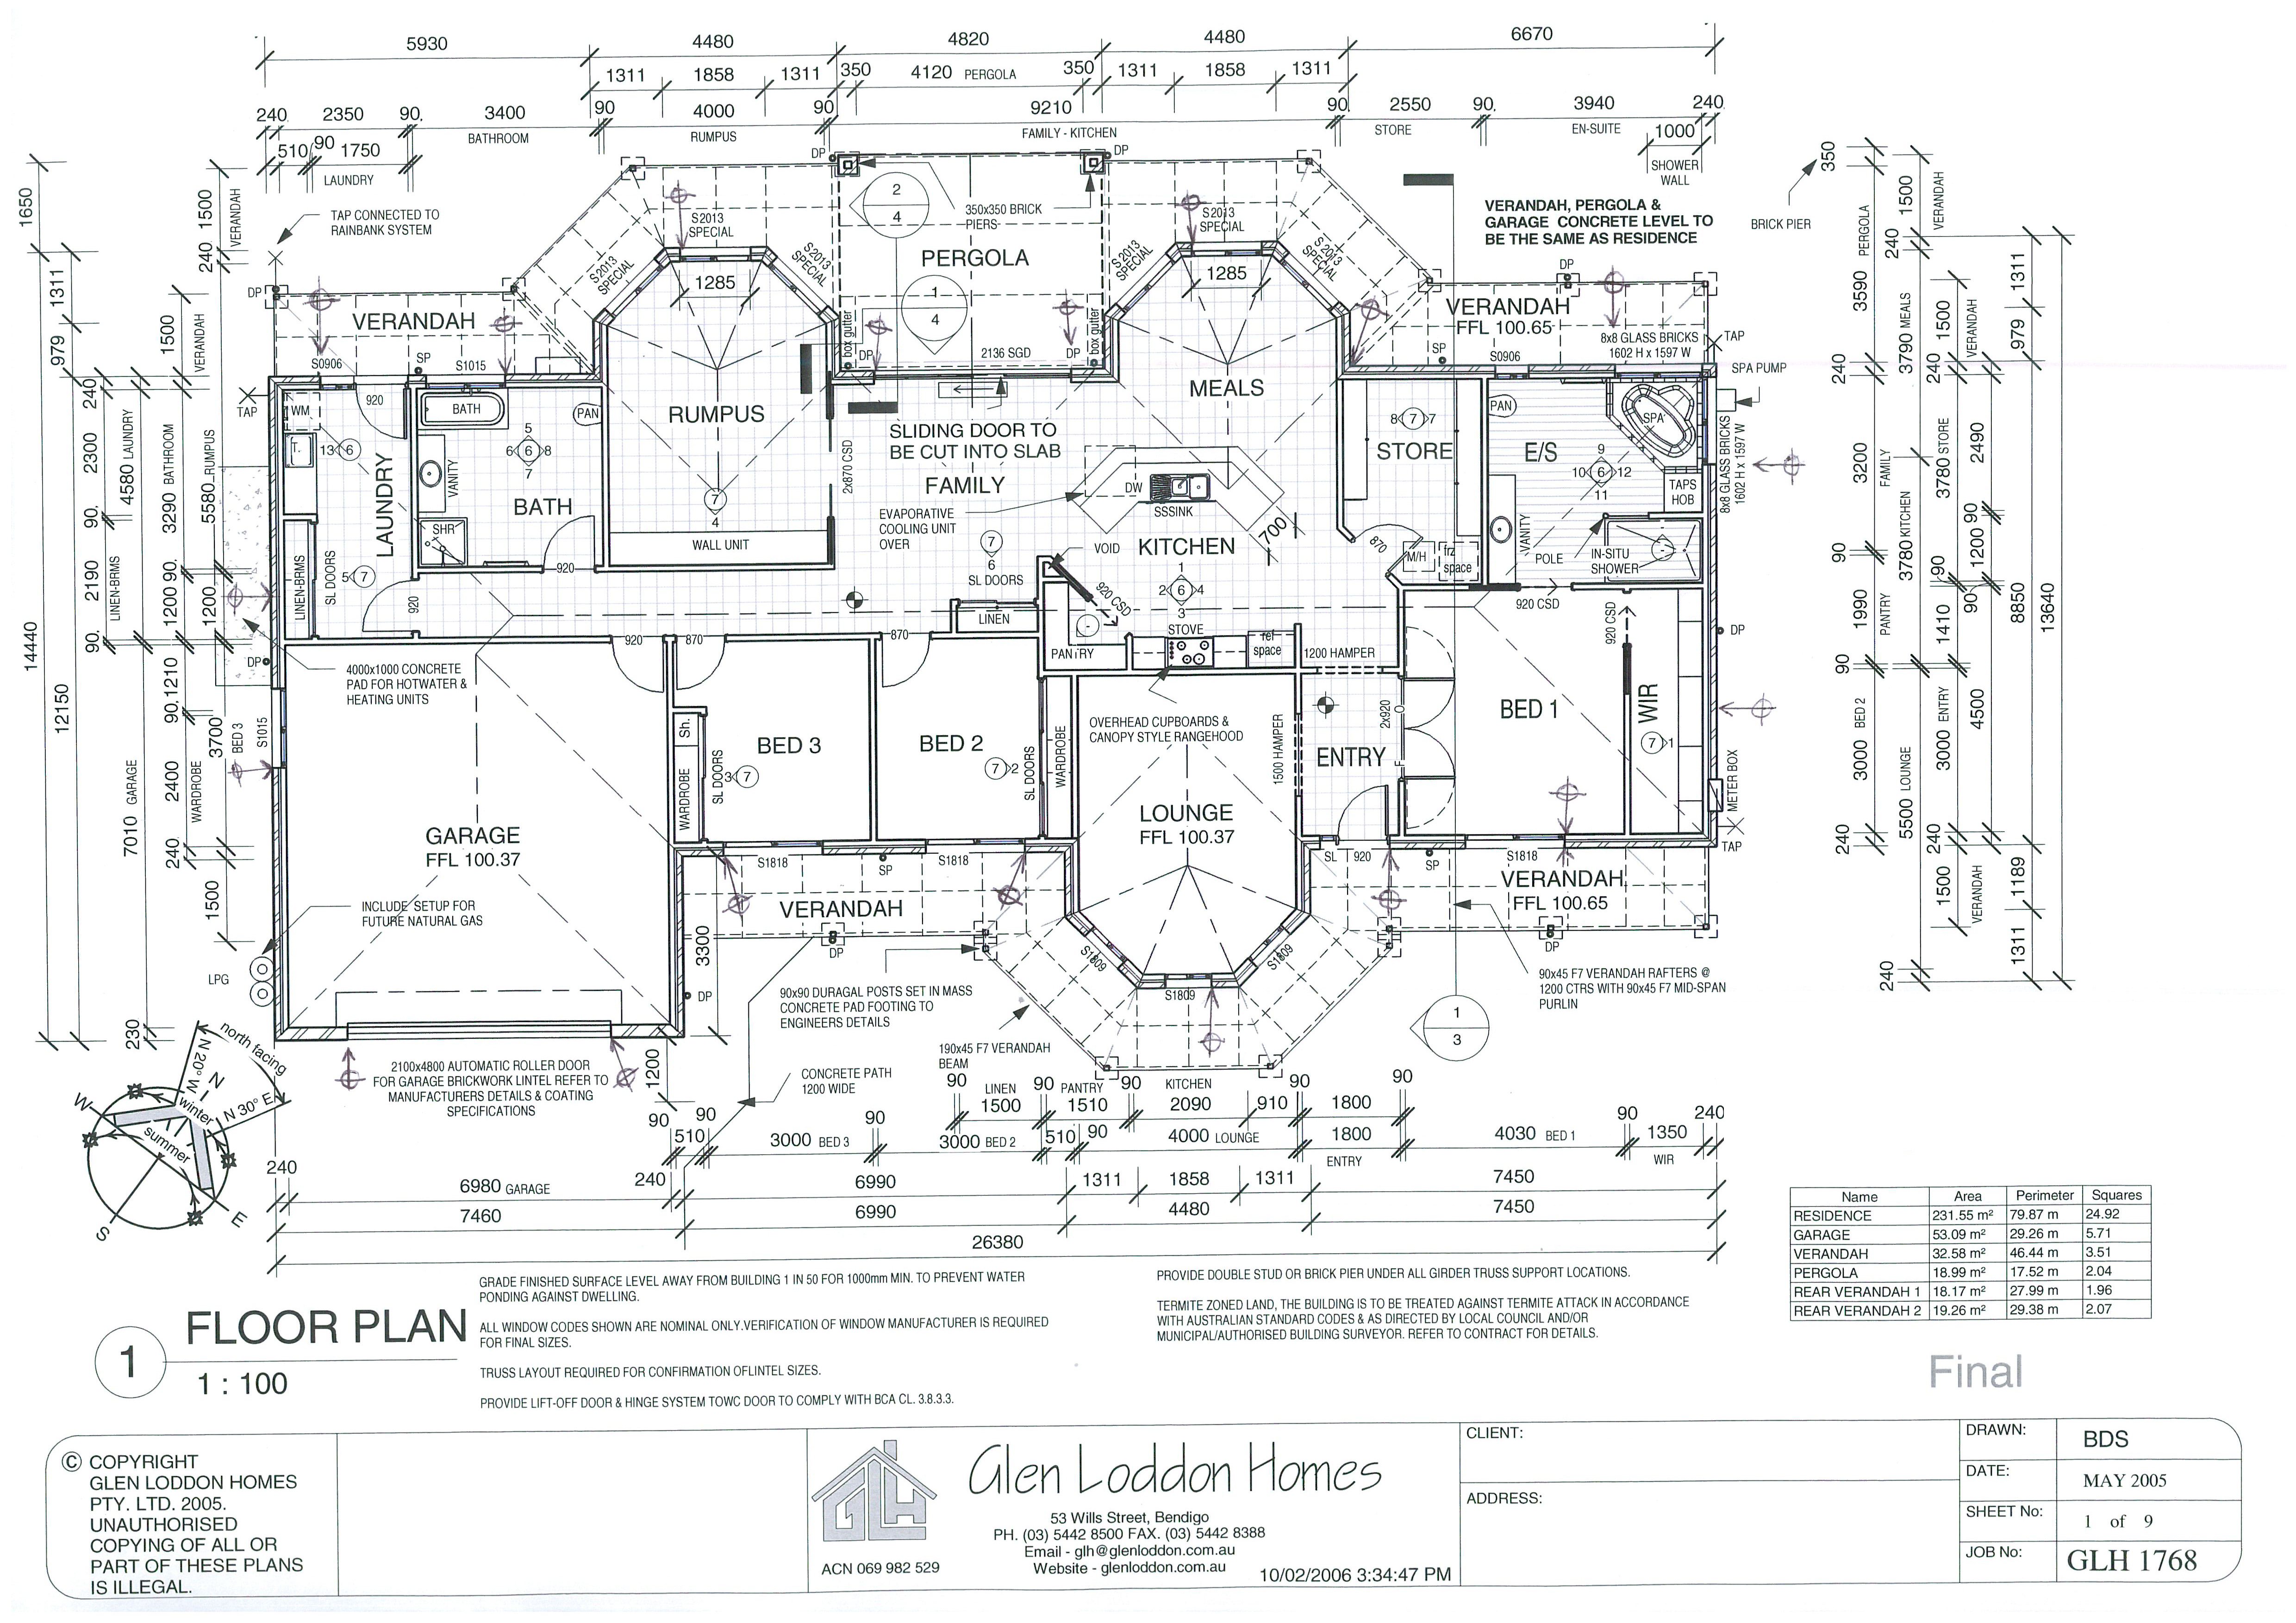 Properties Glen Loddon Homes Electrical Wiring Diagrams For Dummies 1700 2550 Glh1768 The